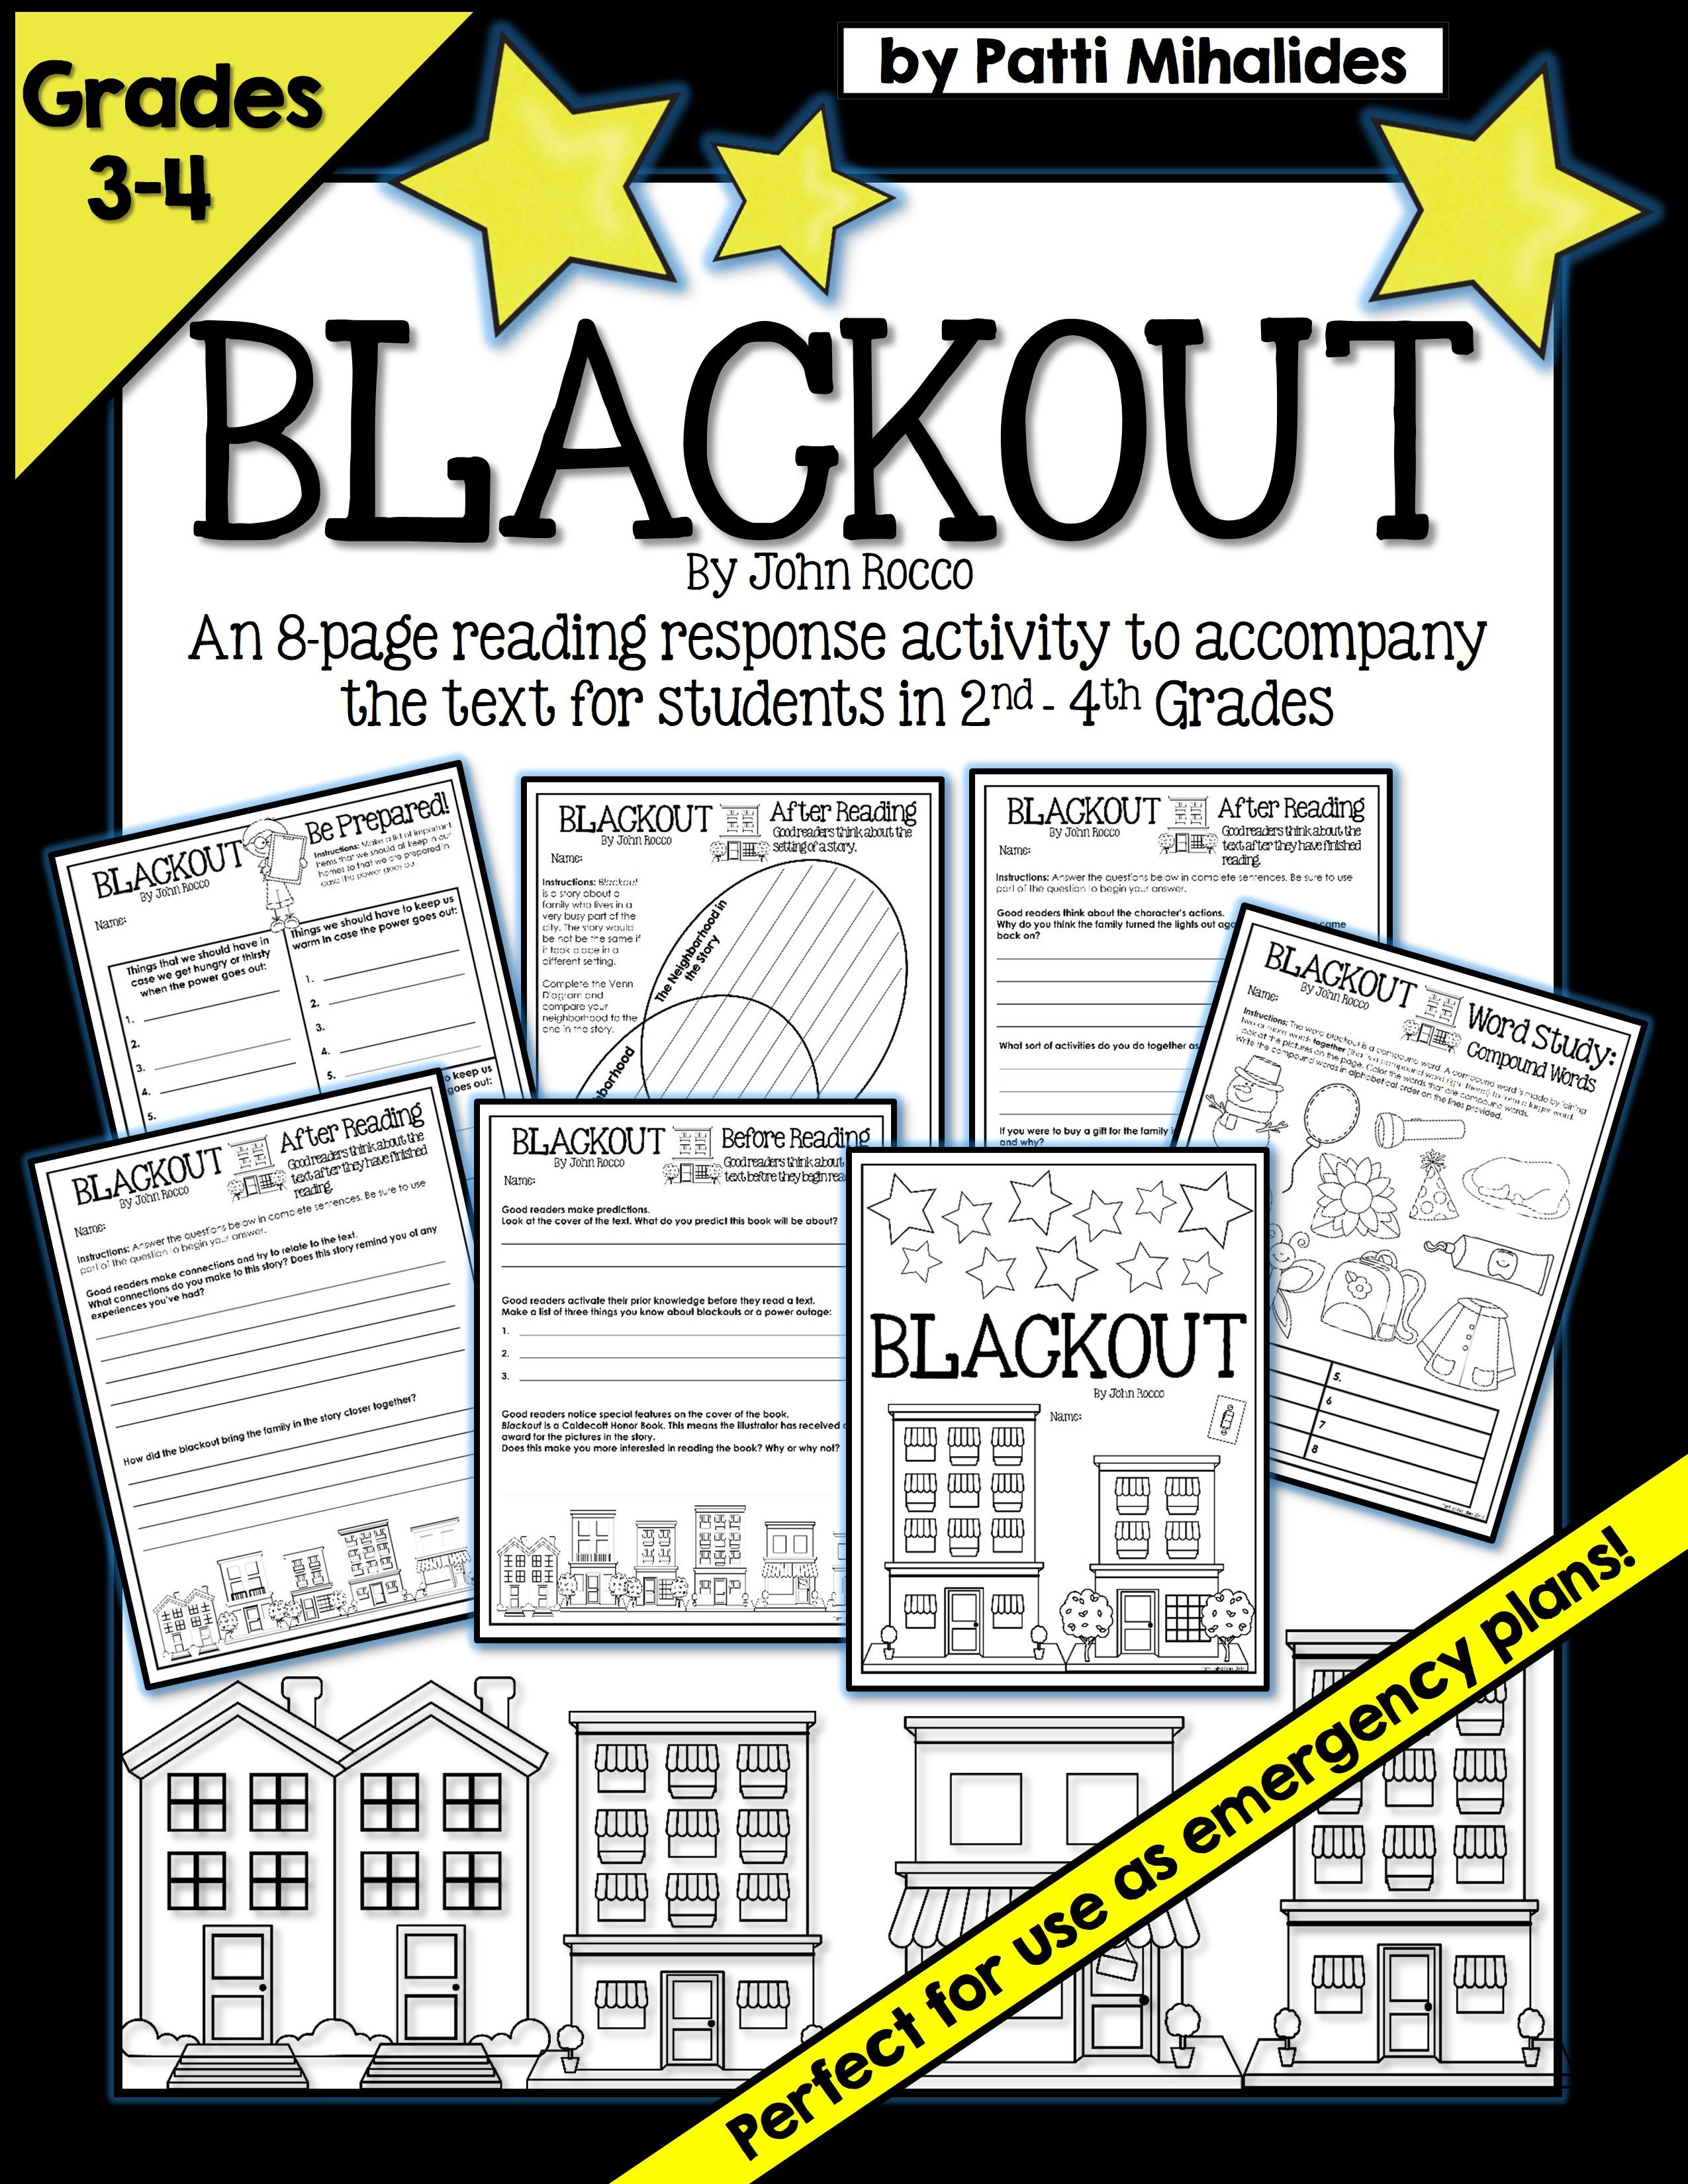 Blackout By John Rocco Reading Response Activity Worksheets For 3rd 4th Grade